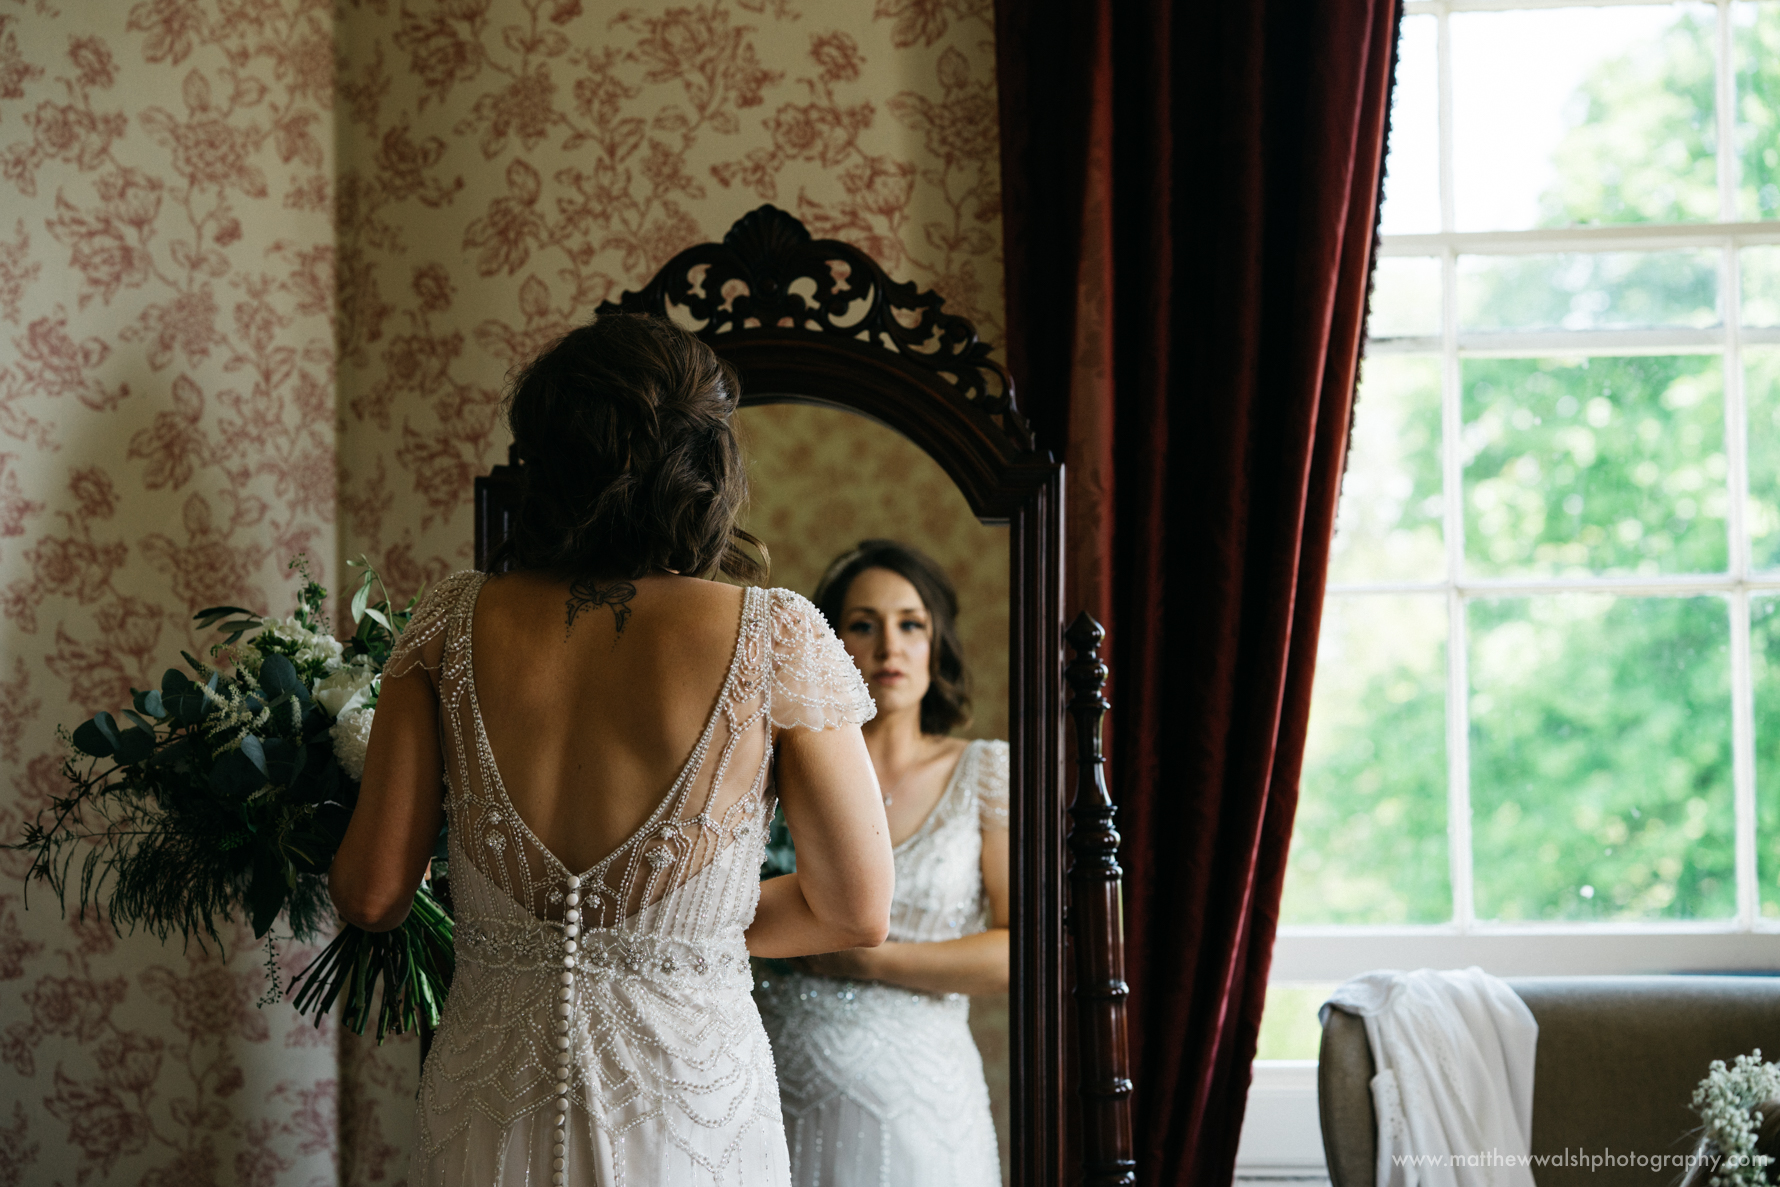 Bride unposed in the mirror